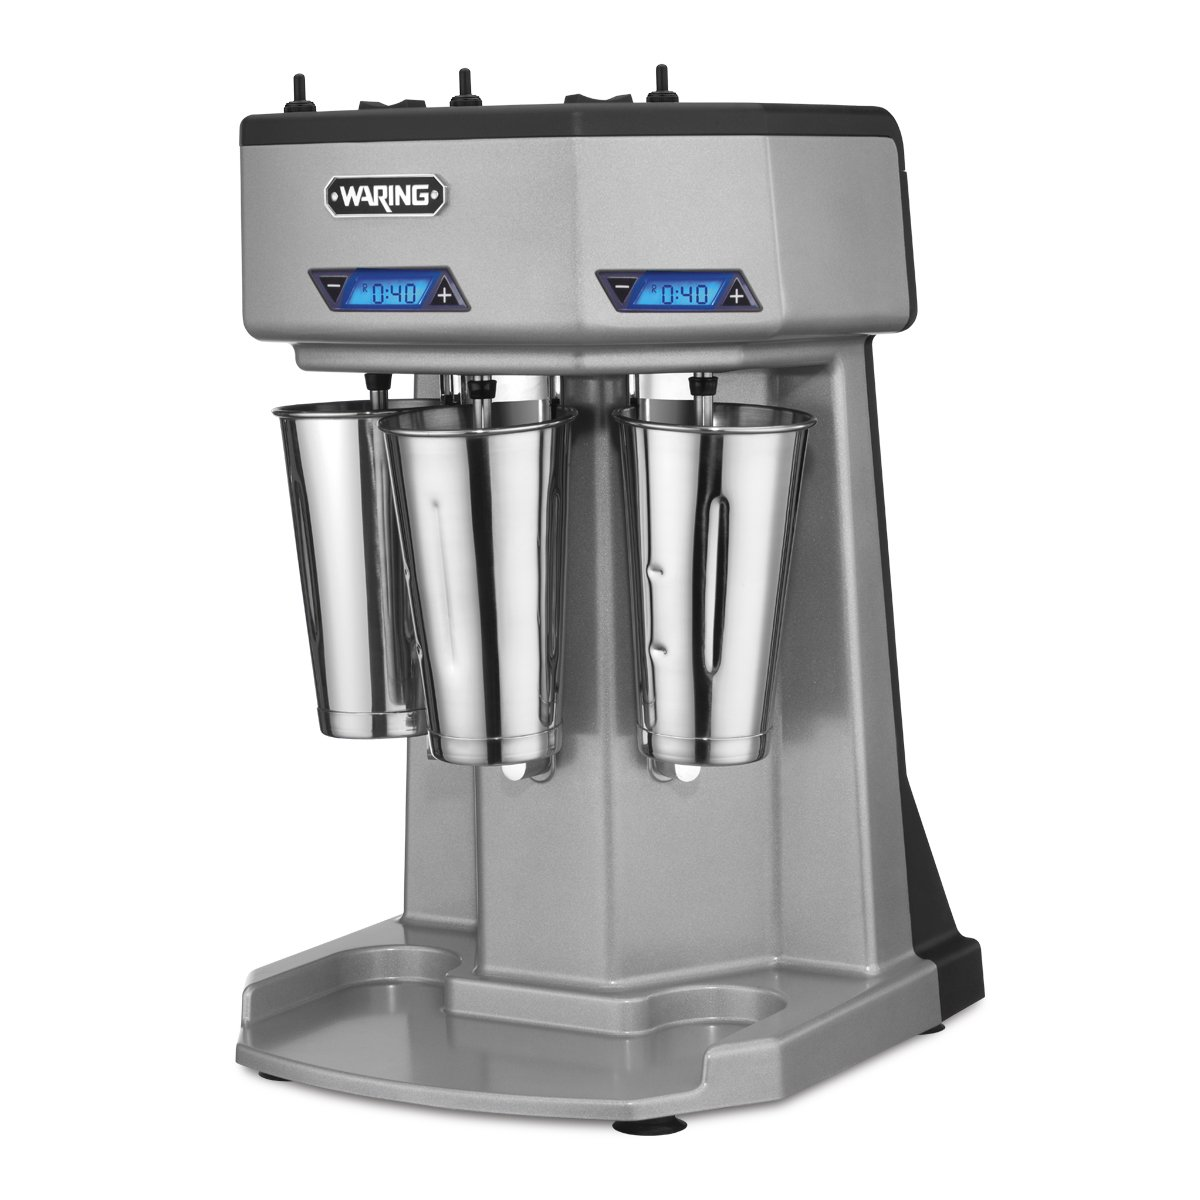 Waring Commercial WDM360T Triple Head Drink Mixer with Timers, Silver